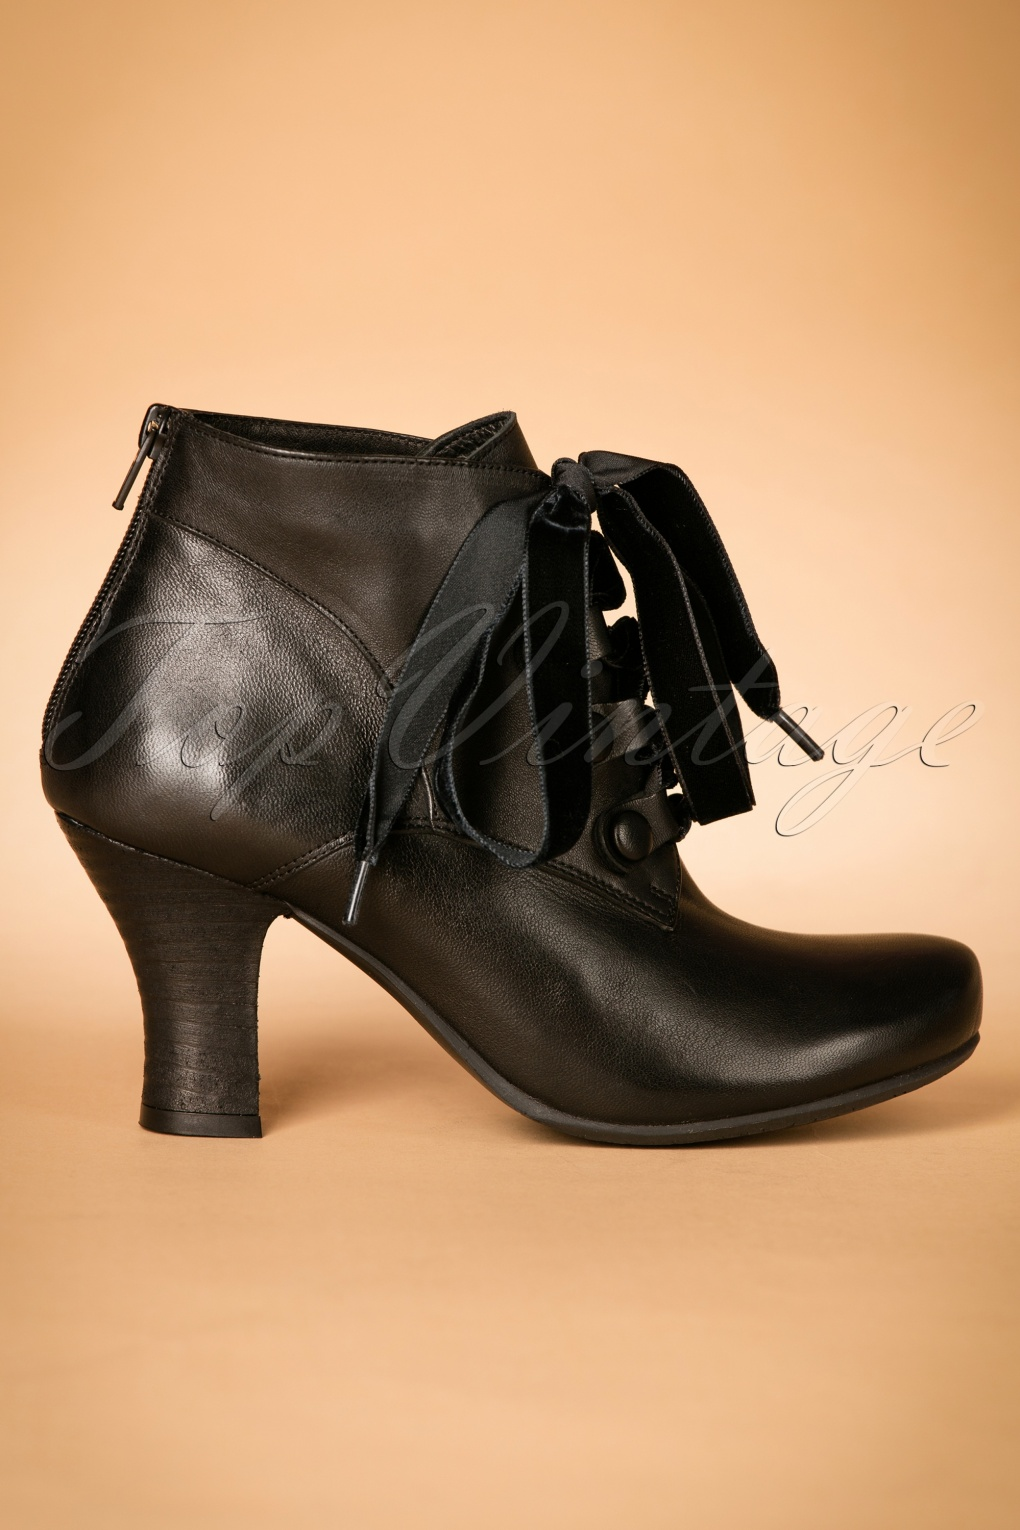 Retro Boots, Granny Boots, 70s Boots 40s Kathy Lace Up Leather Booties in Black £142.17 AT vintagedancer.com